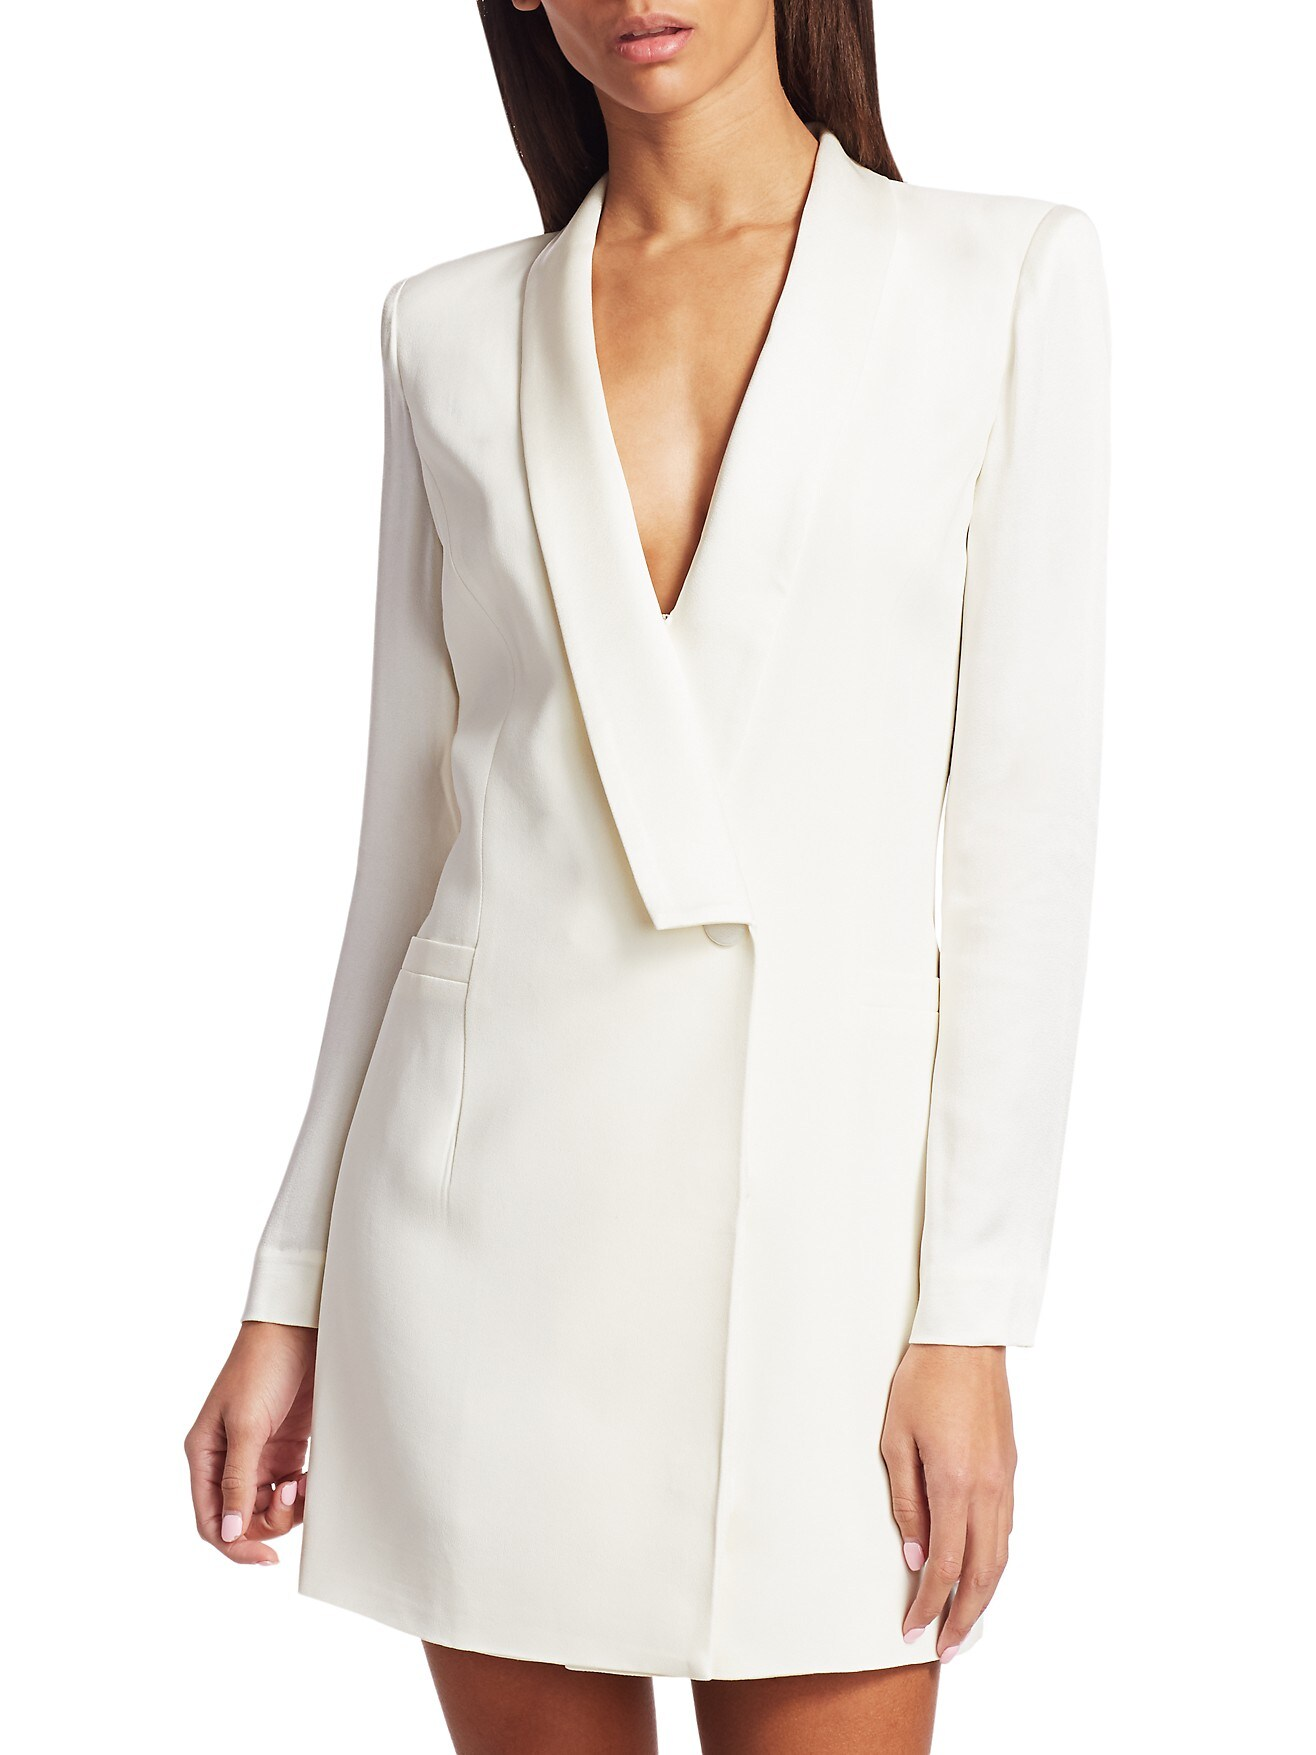 short white suit dress